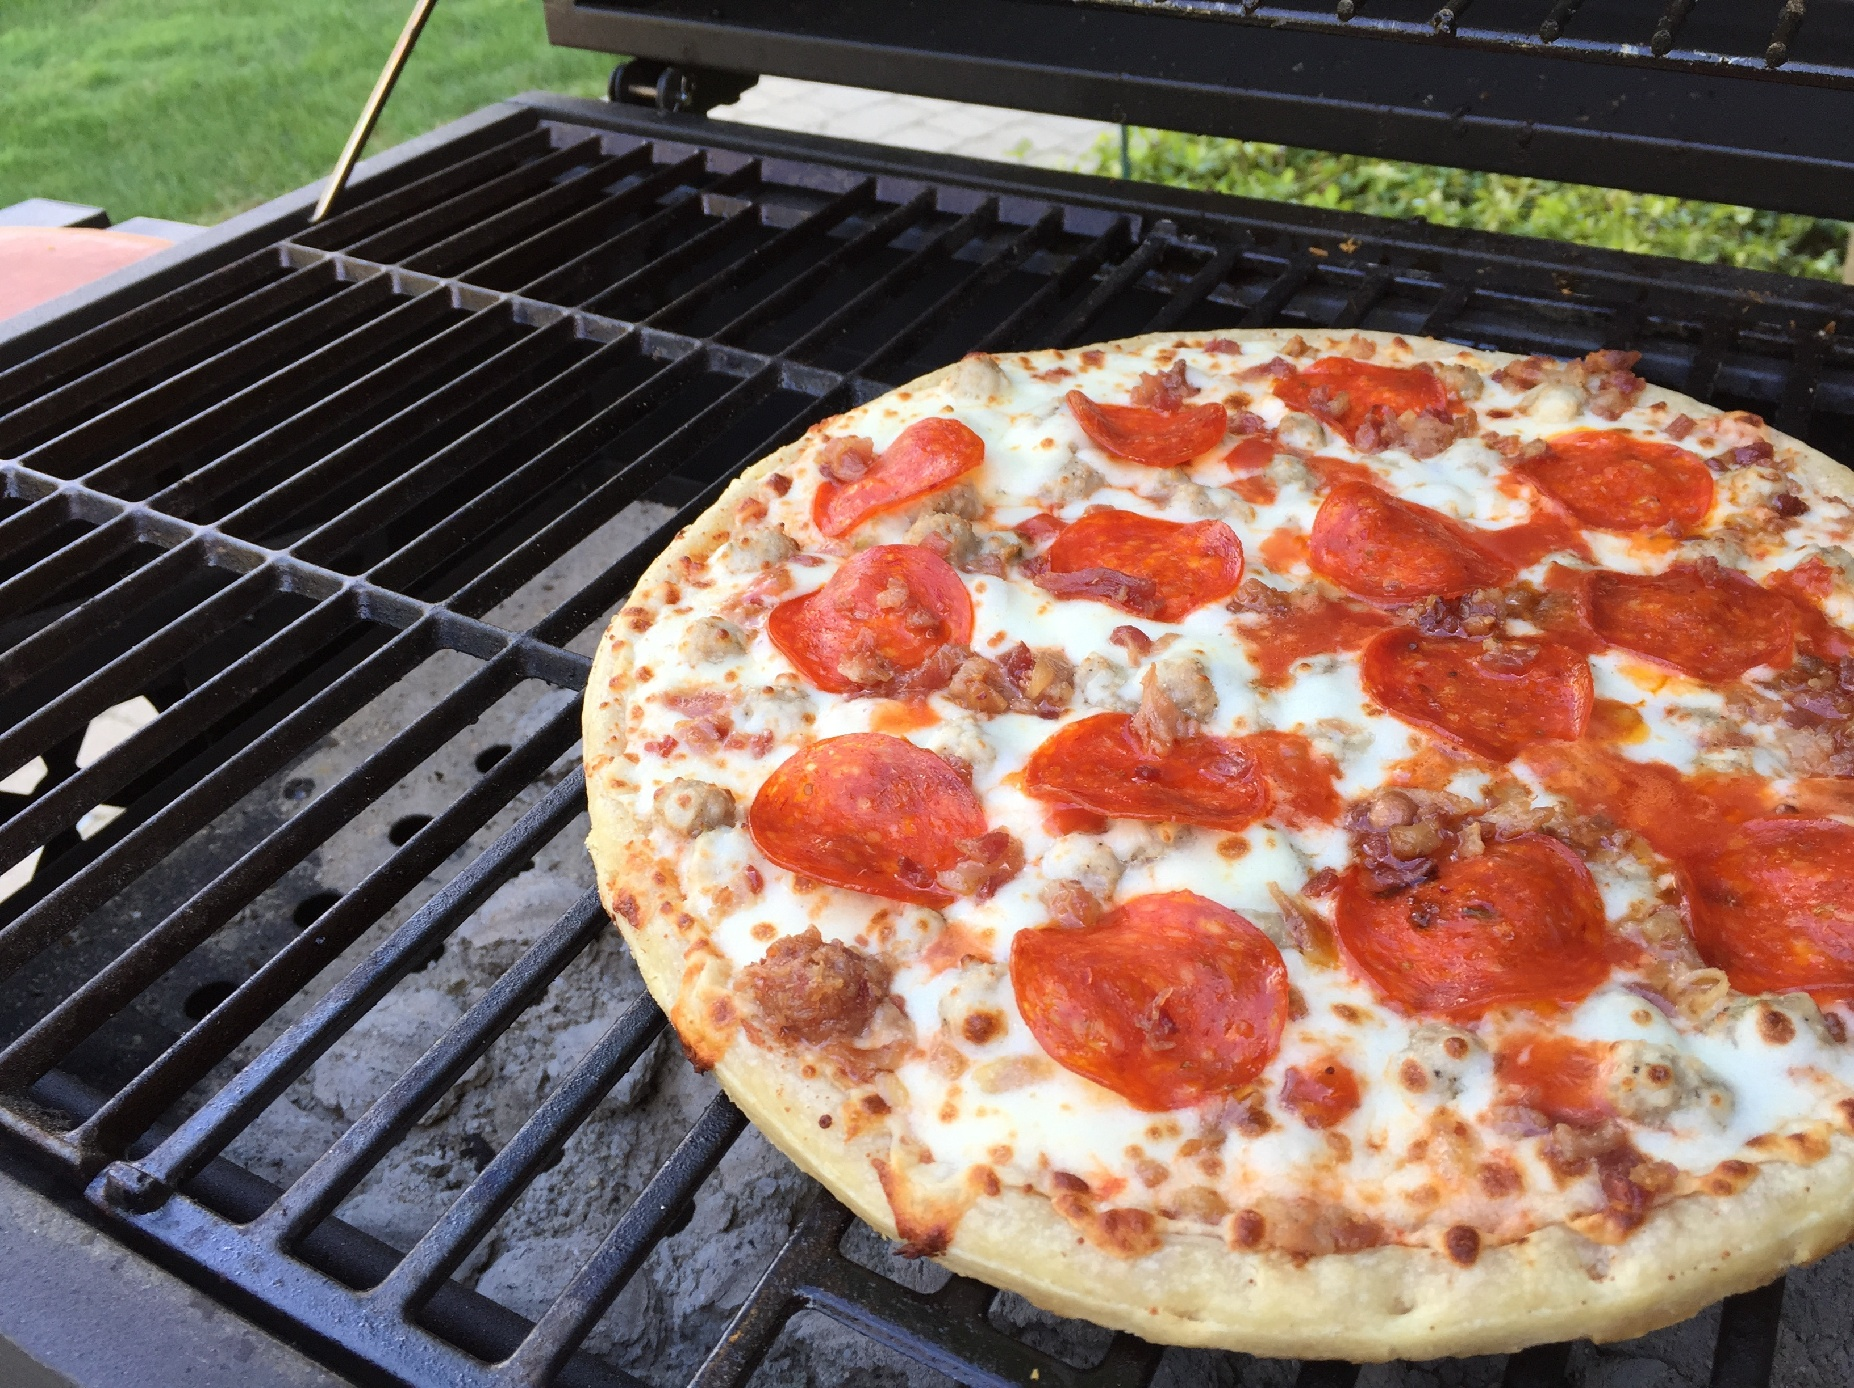 Ignite your Summer with Pizza on the Grill